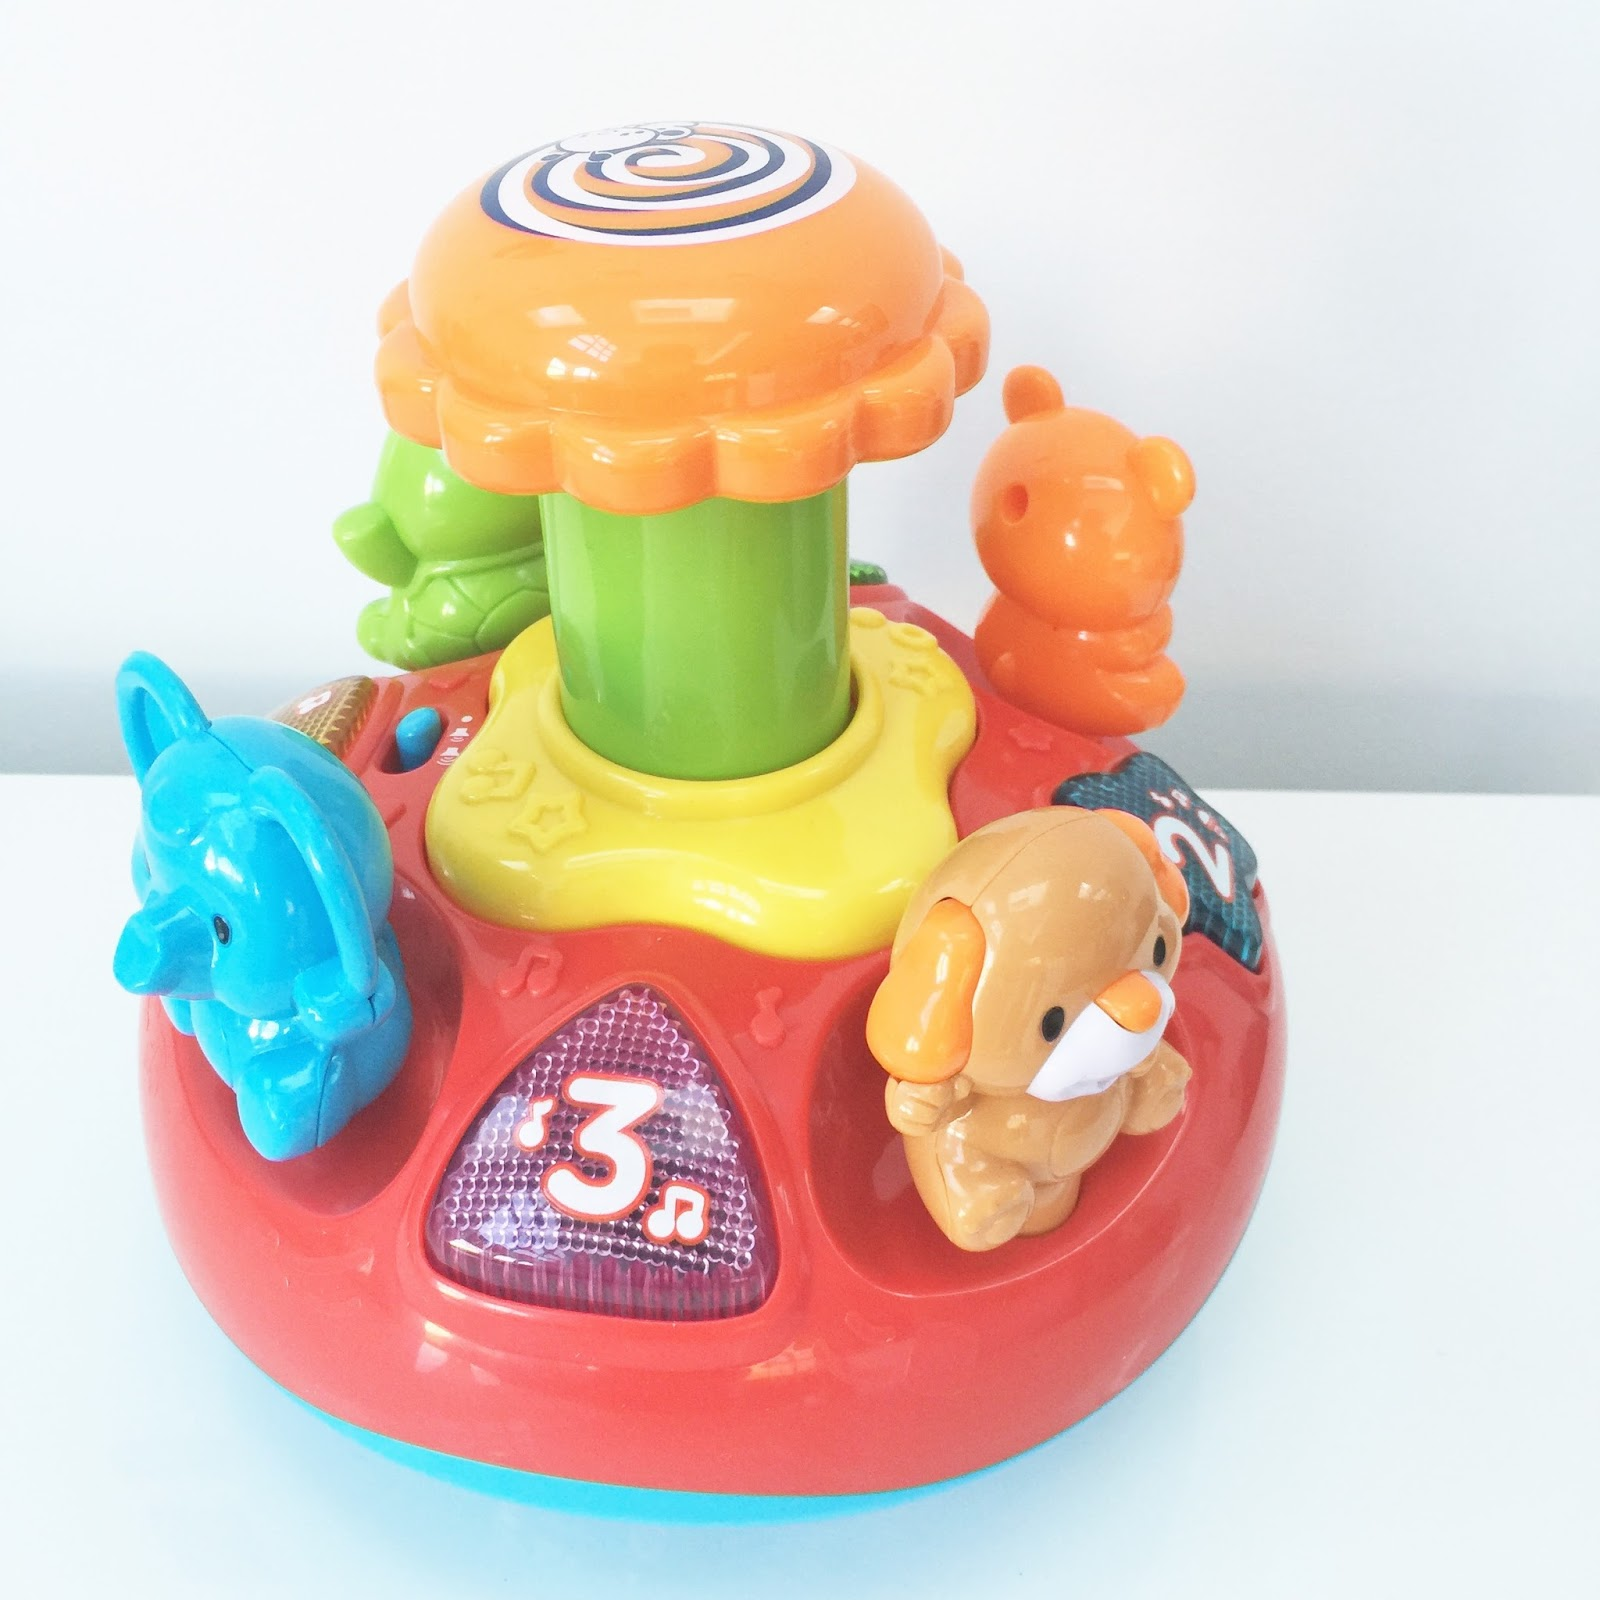 Top Vtech Toys : Product review vtech push and play spinning top the